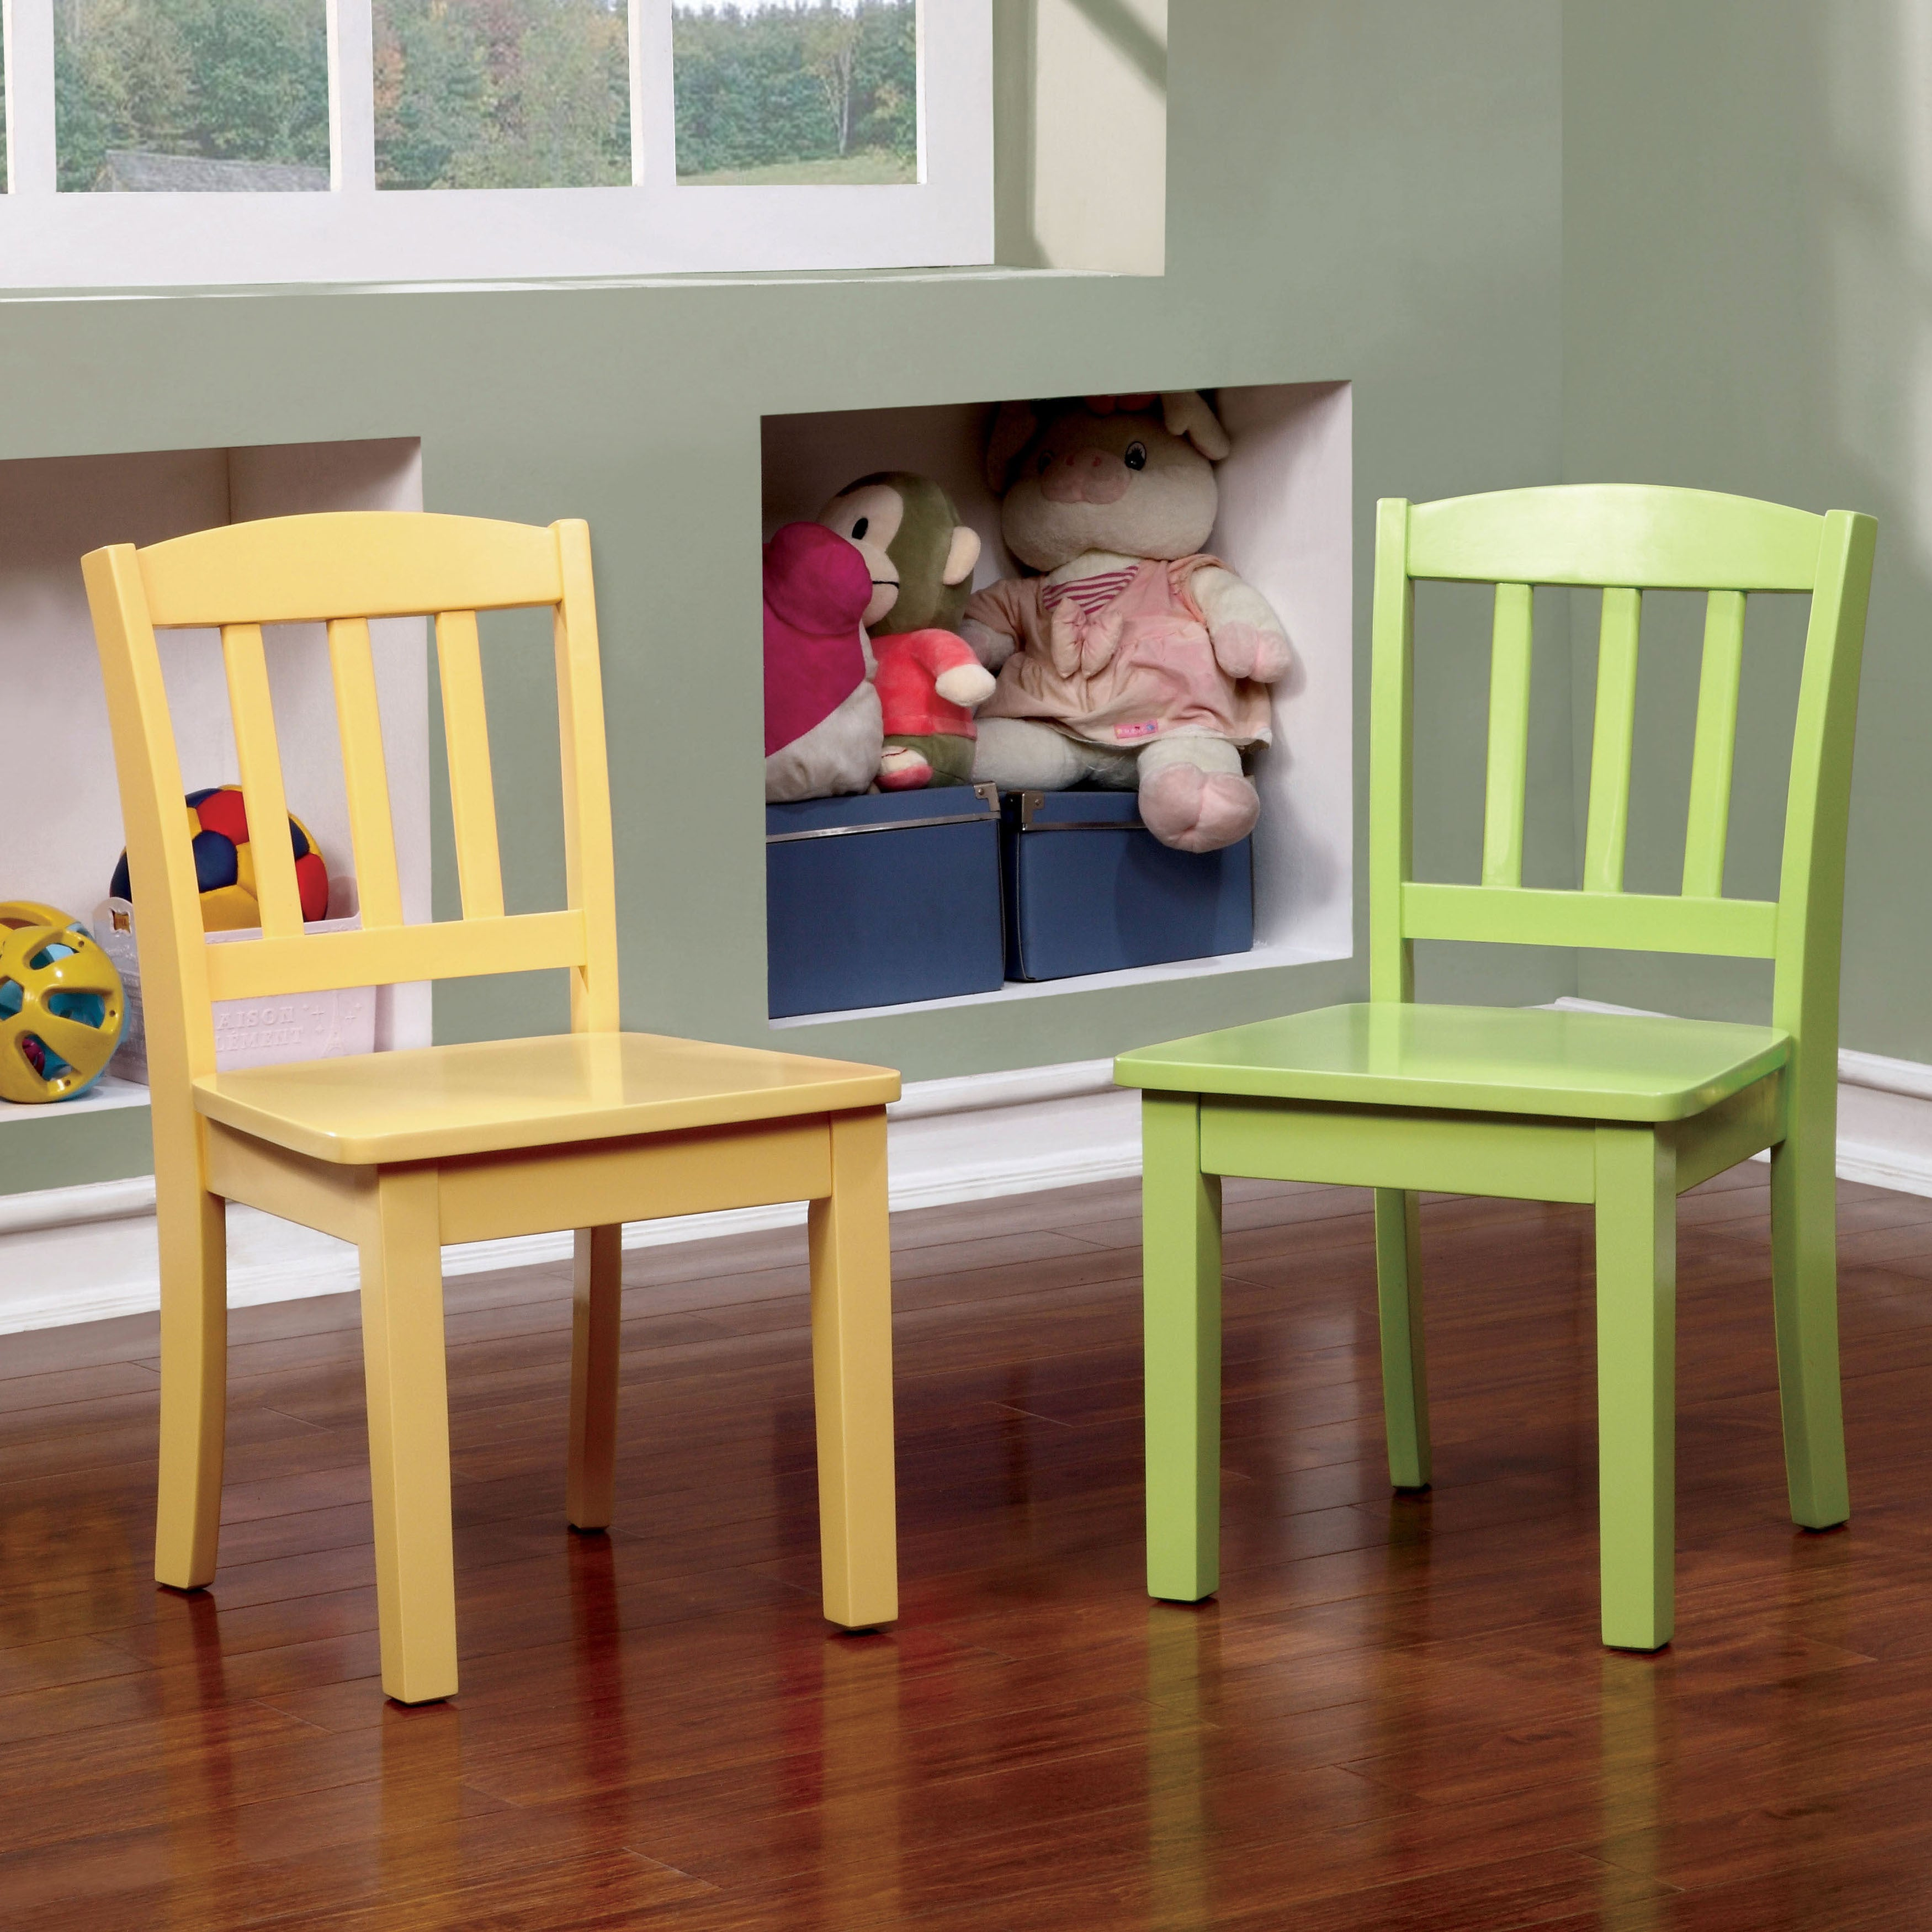 Furniture of America Sallie Youth 5-piece Table and Chair Set - Free Shipping Today - Overstock.com - 18103614 & Furniture of America Sallie Youth 5-piece Table and Chair Set ...